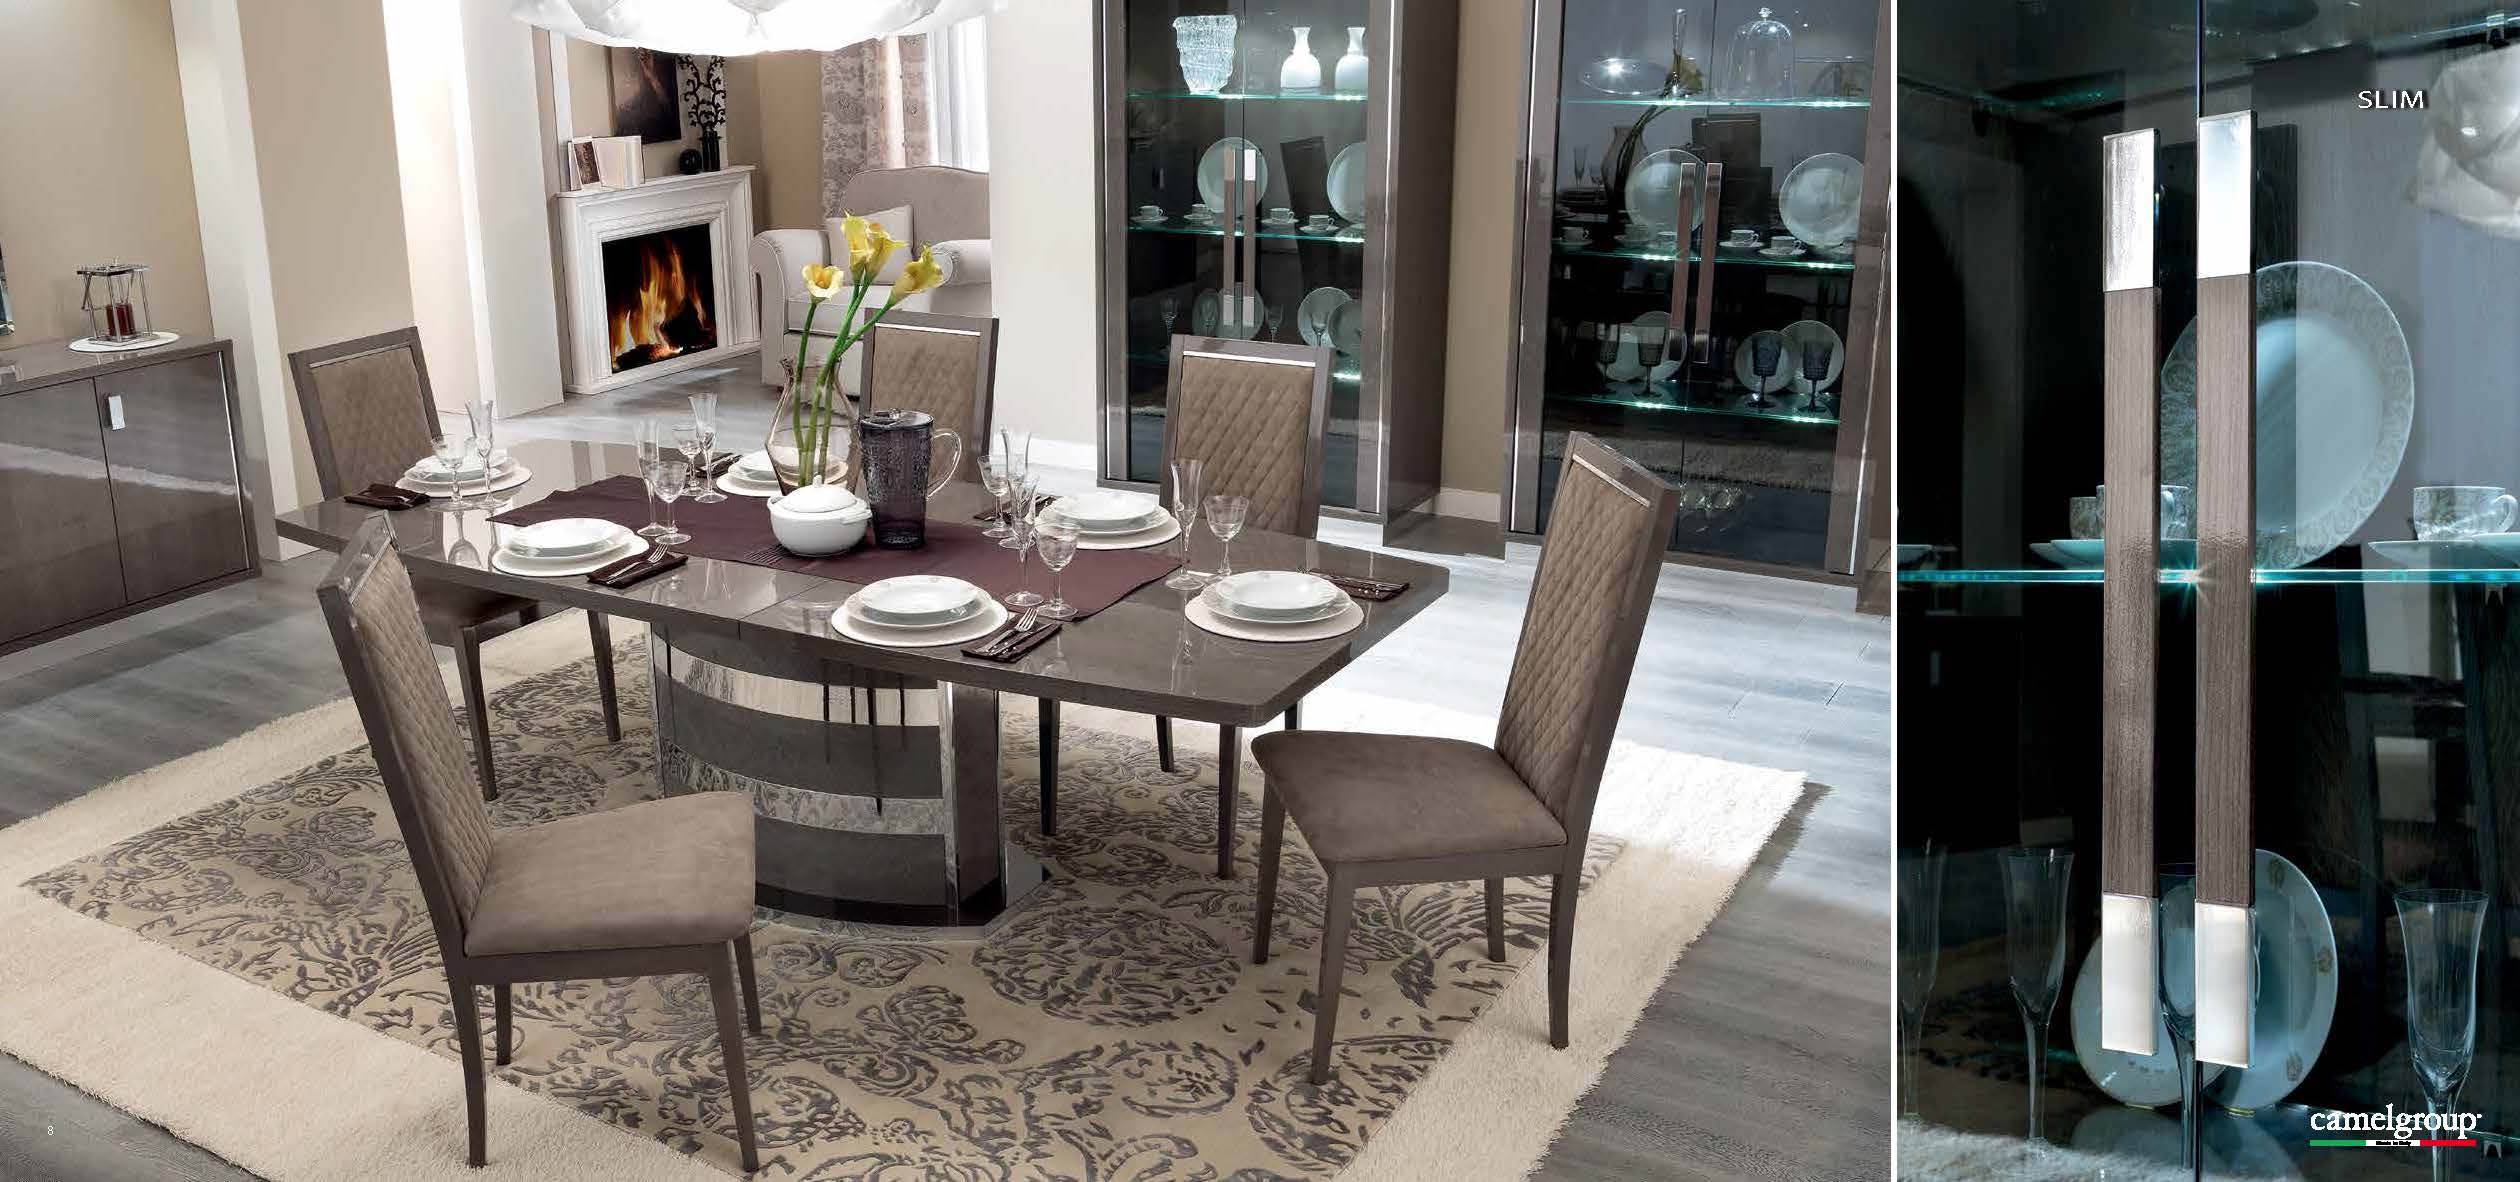 Platinum slim dining modern formal dining sets dining for Modern formal dining room sets